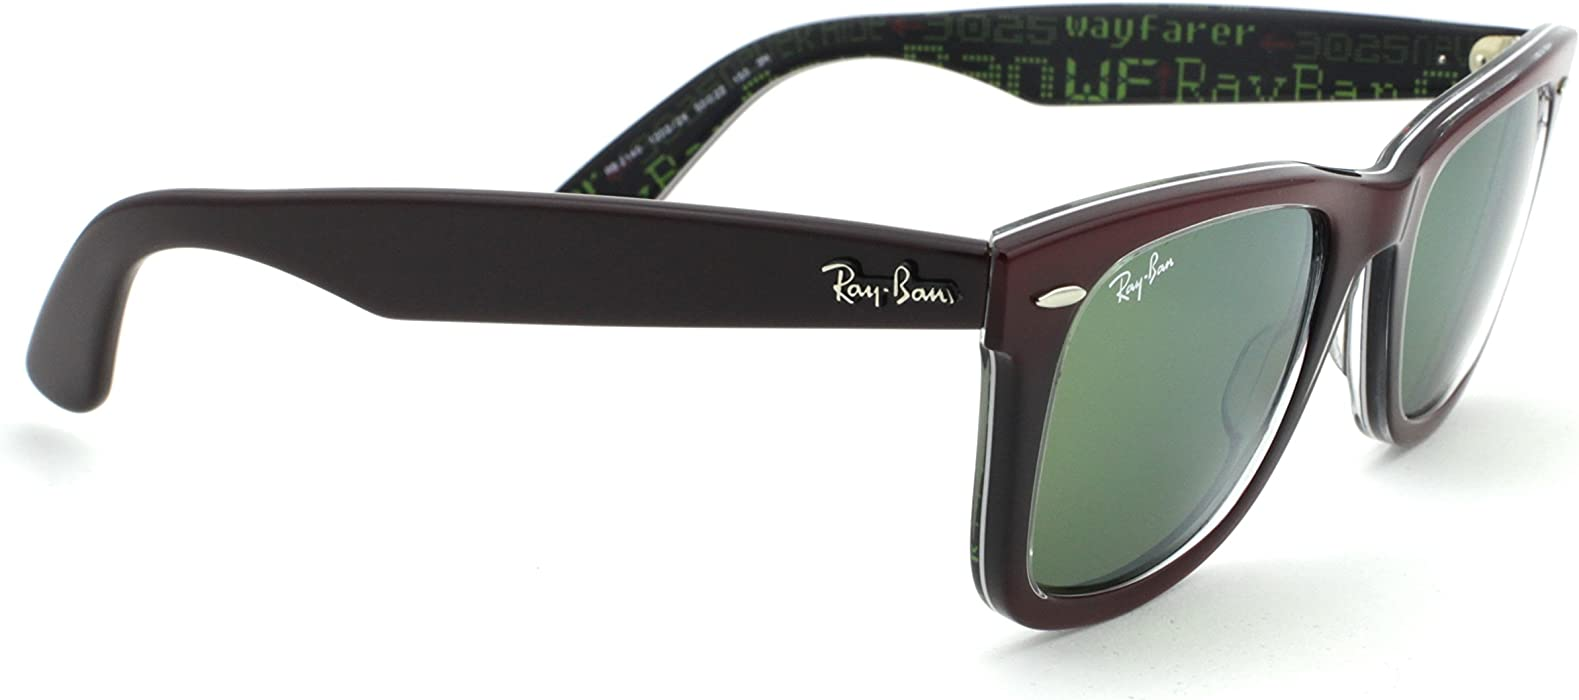 62d9d046834 Amazon.com  Ray-Ban RB2140 12022X Wayfarer PIXEL Red Frame   Green ...